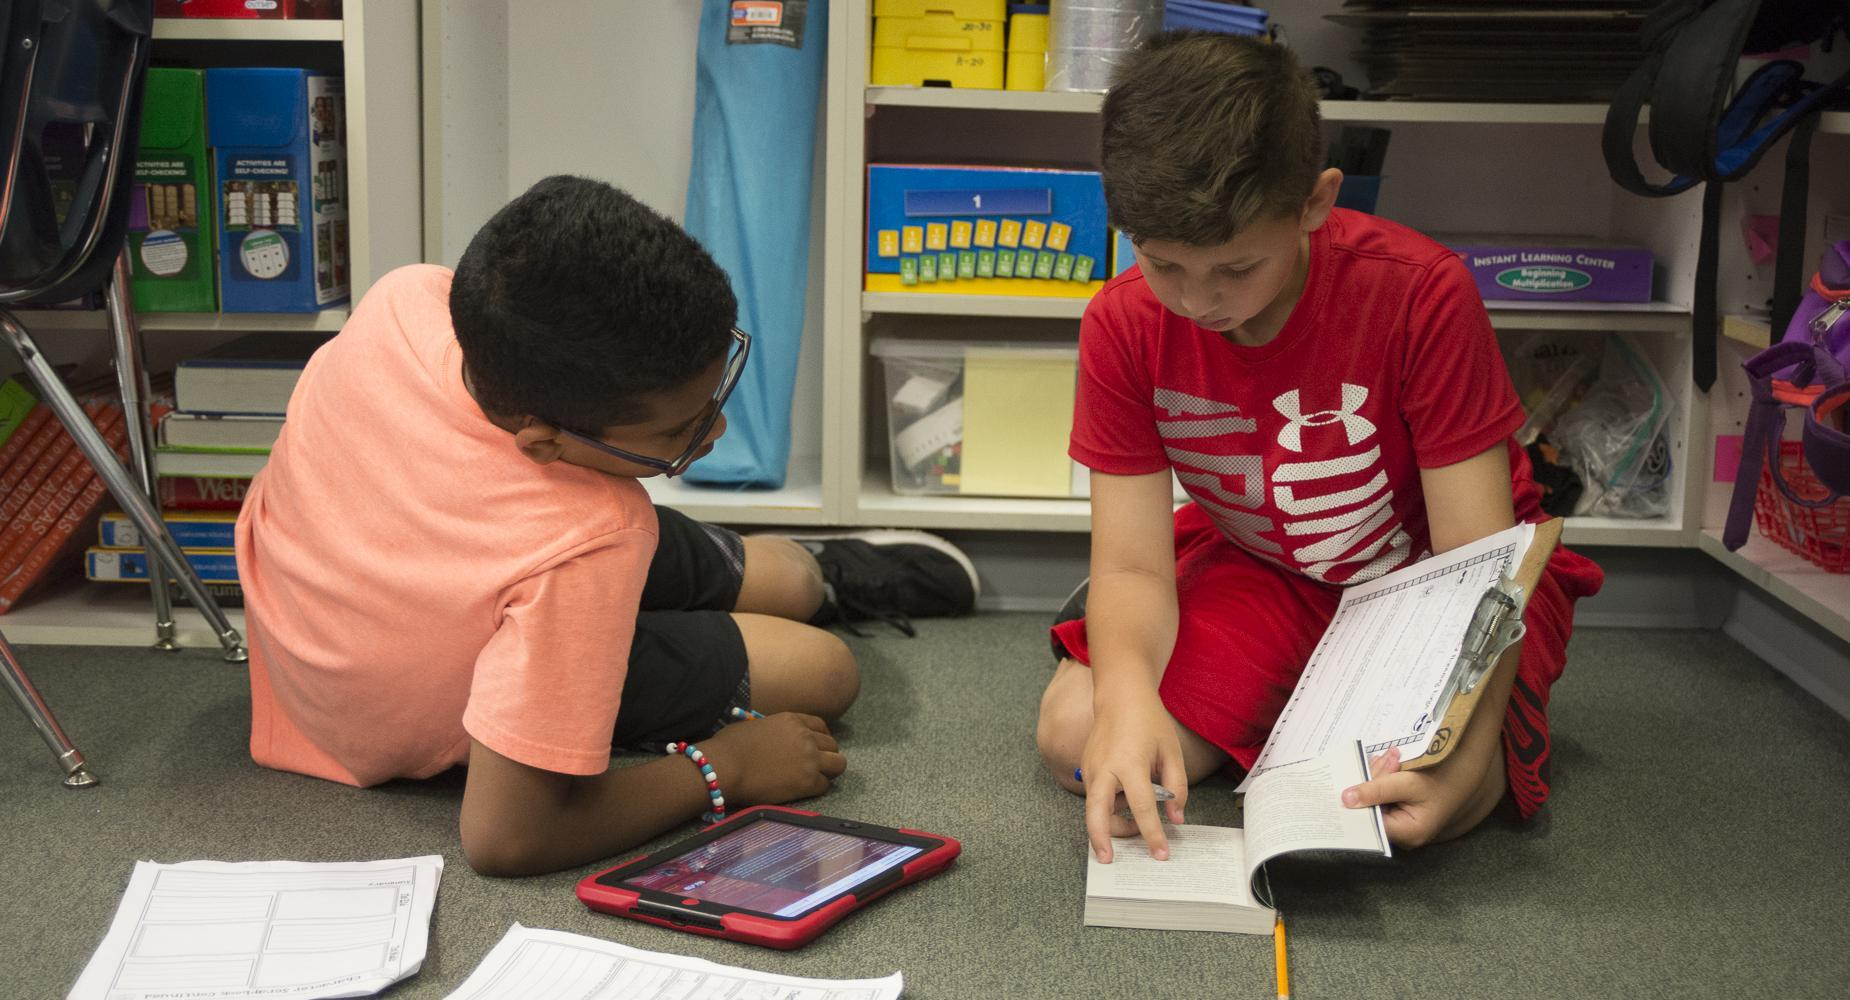 Two boys work on assignment on floor of classroom.